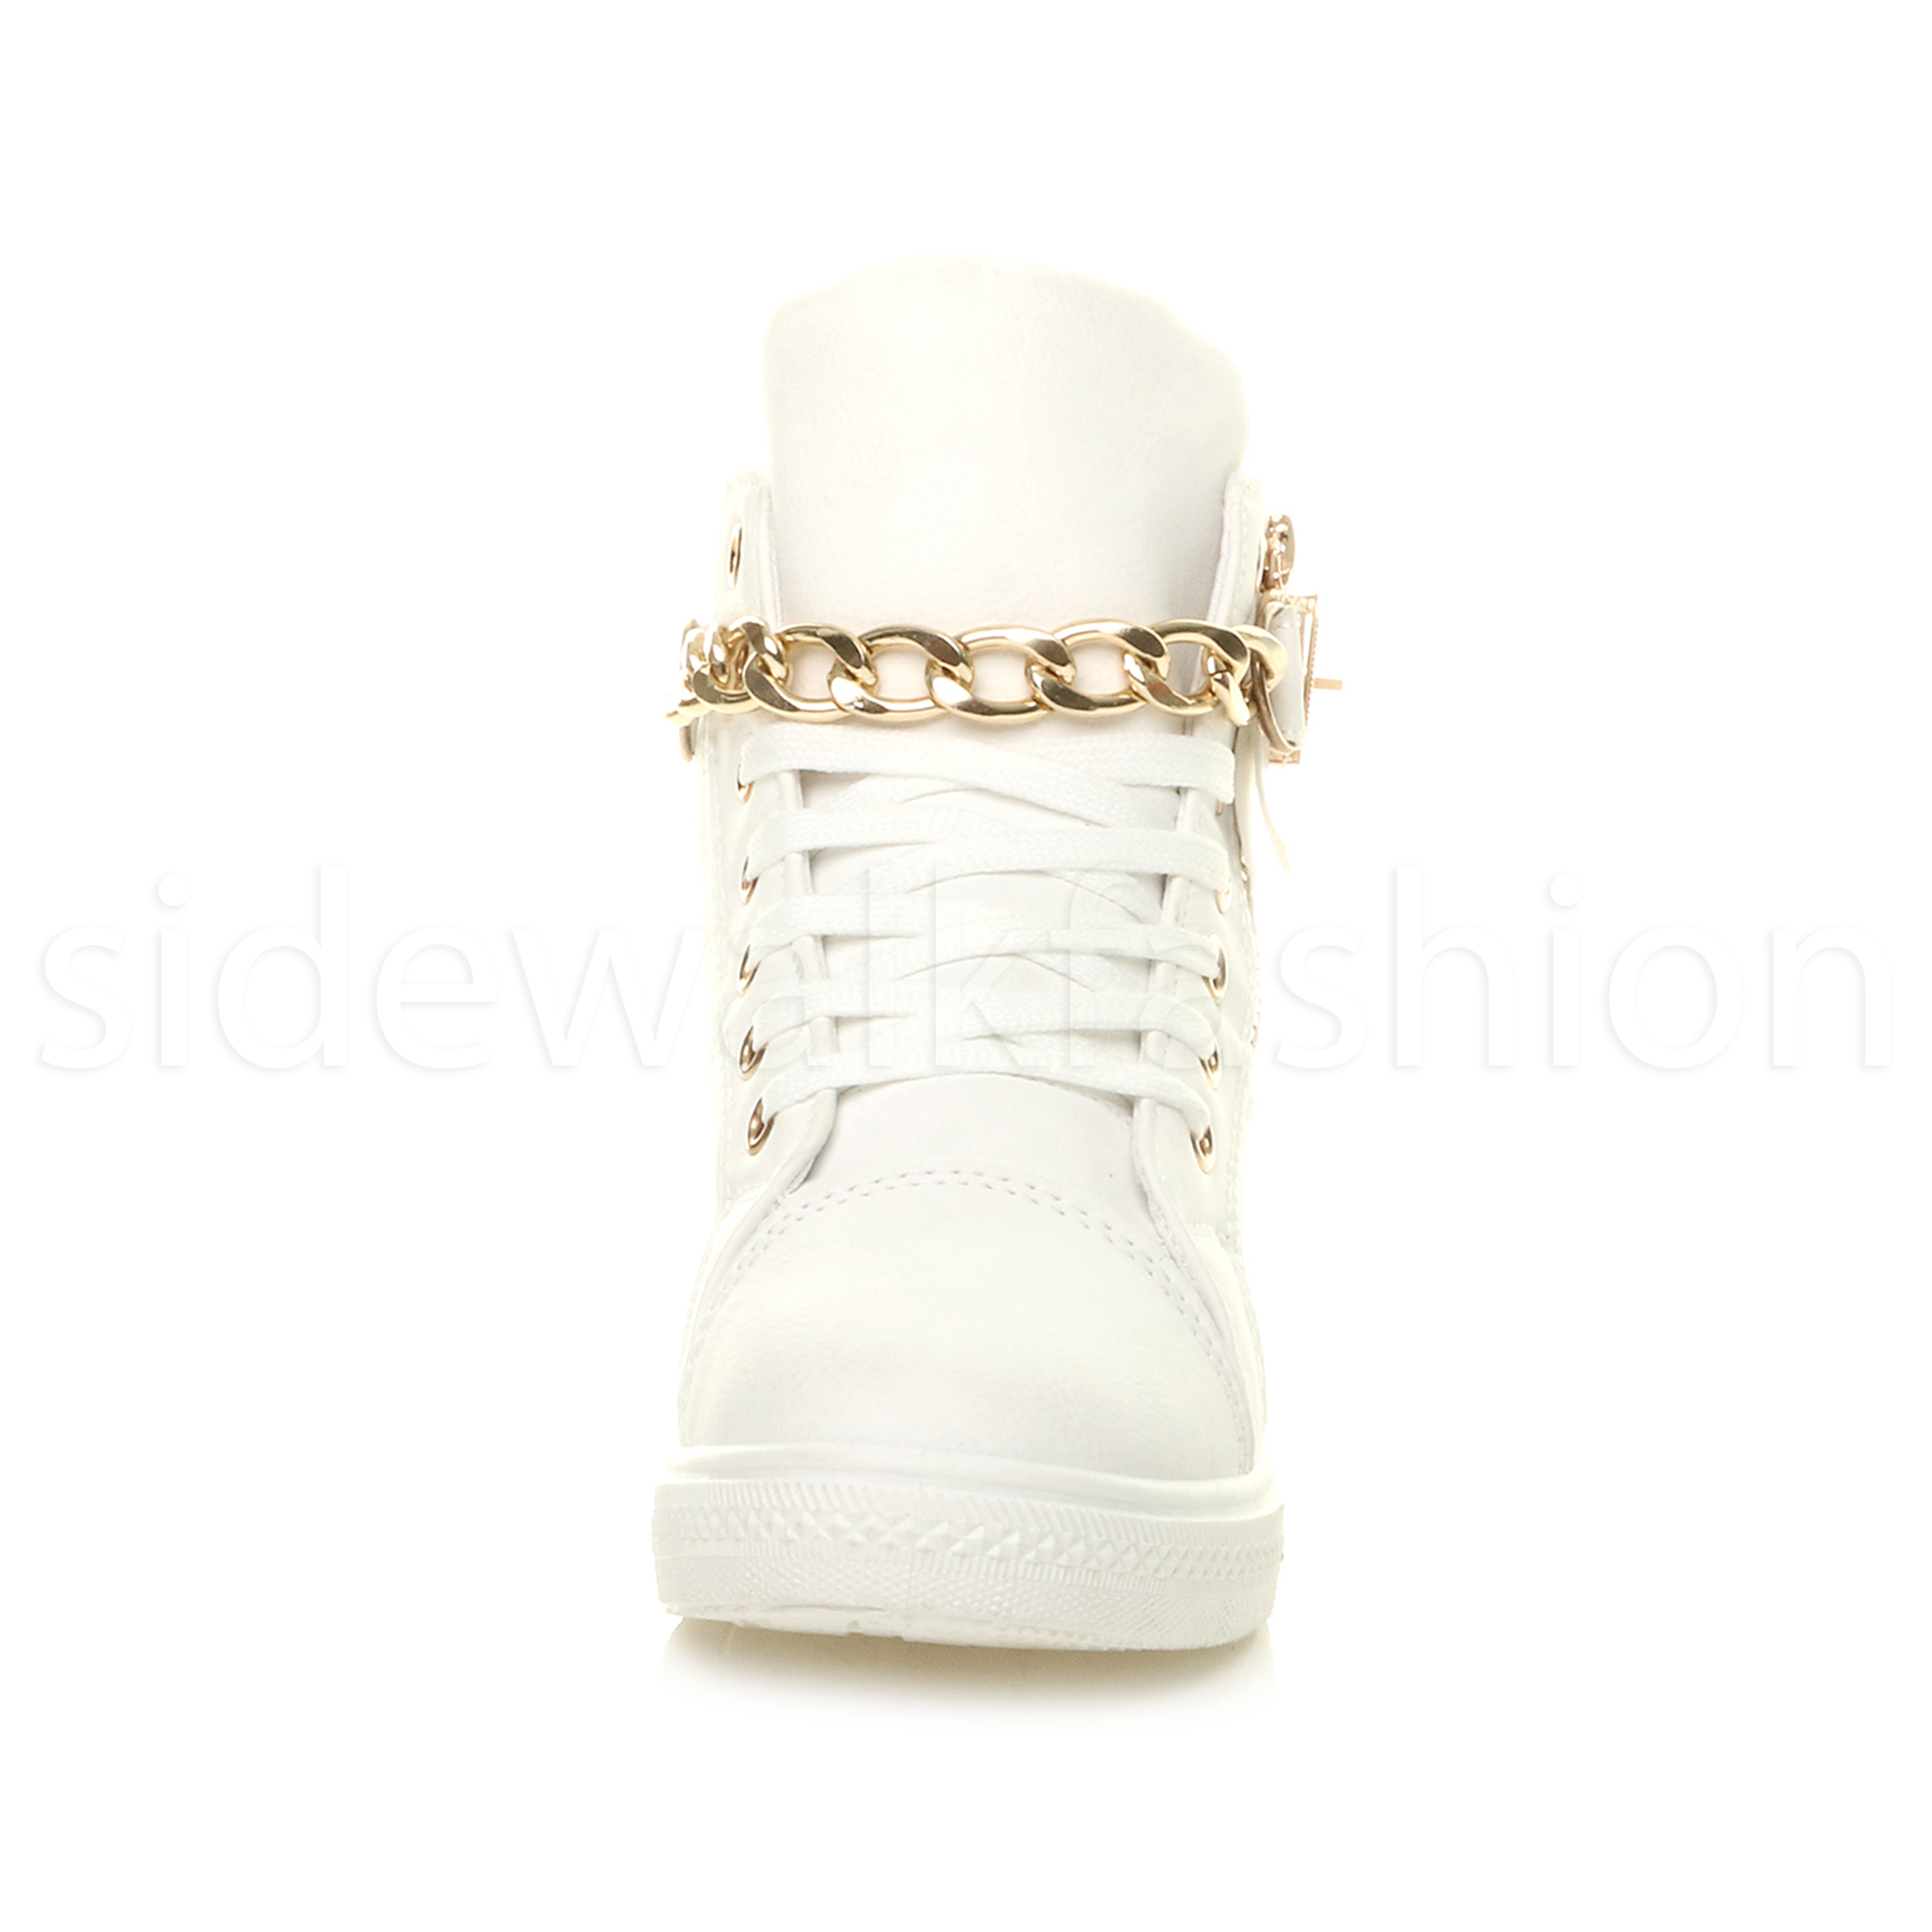 Womens ladies mid wedge heel gold chain platform hi-top trainers ankle boots